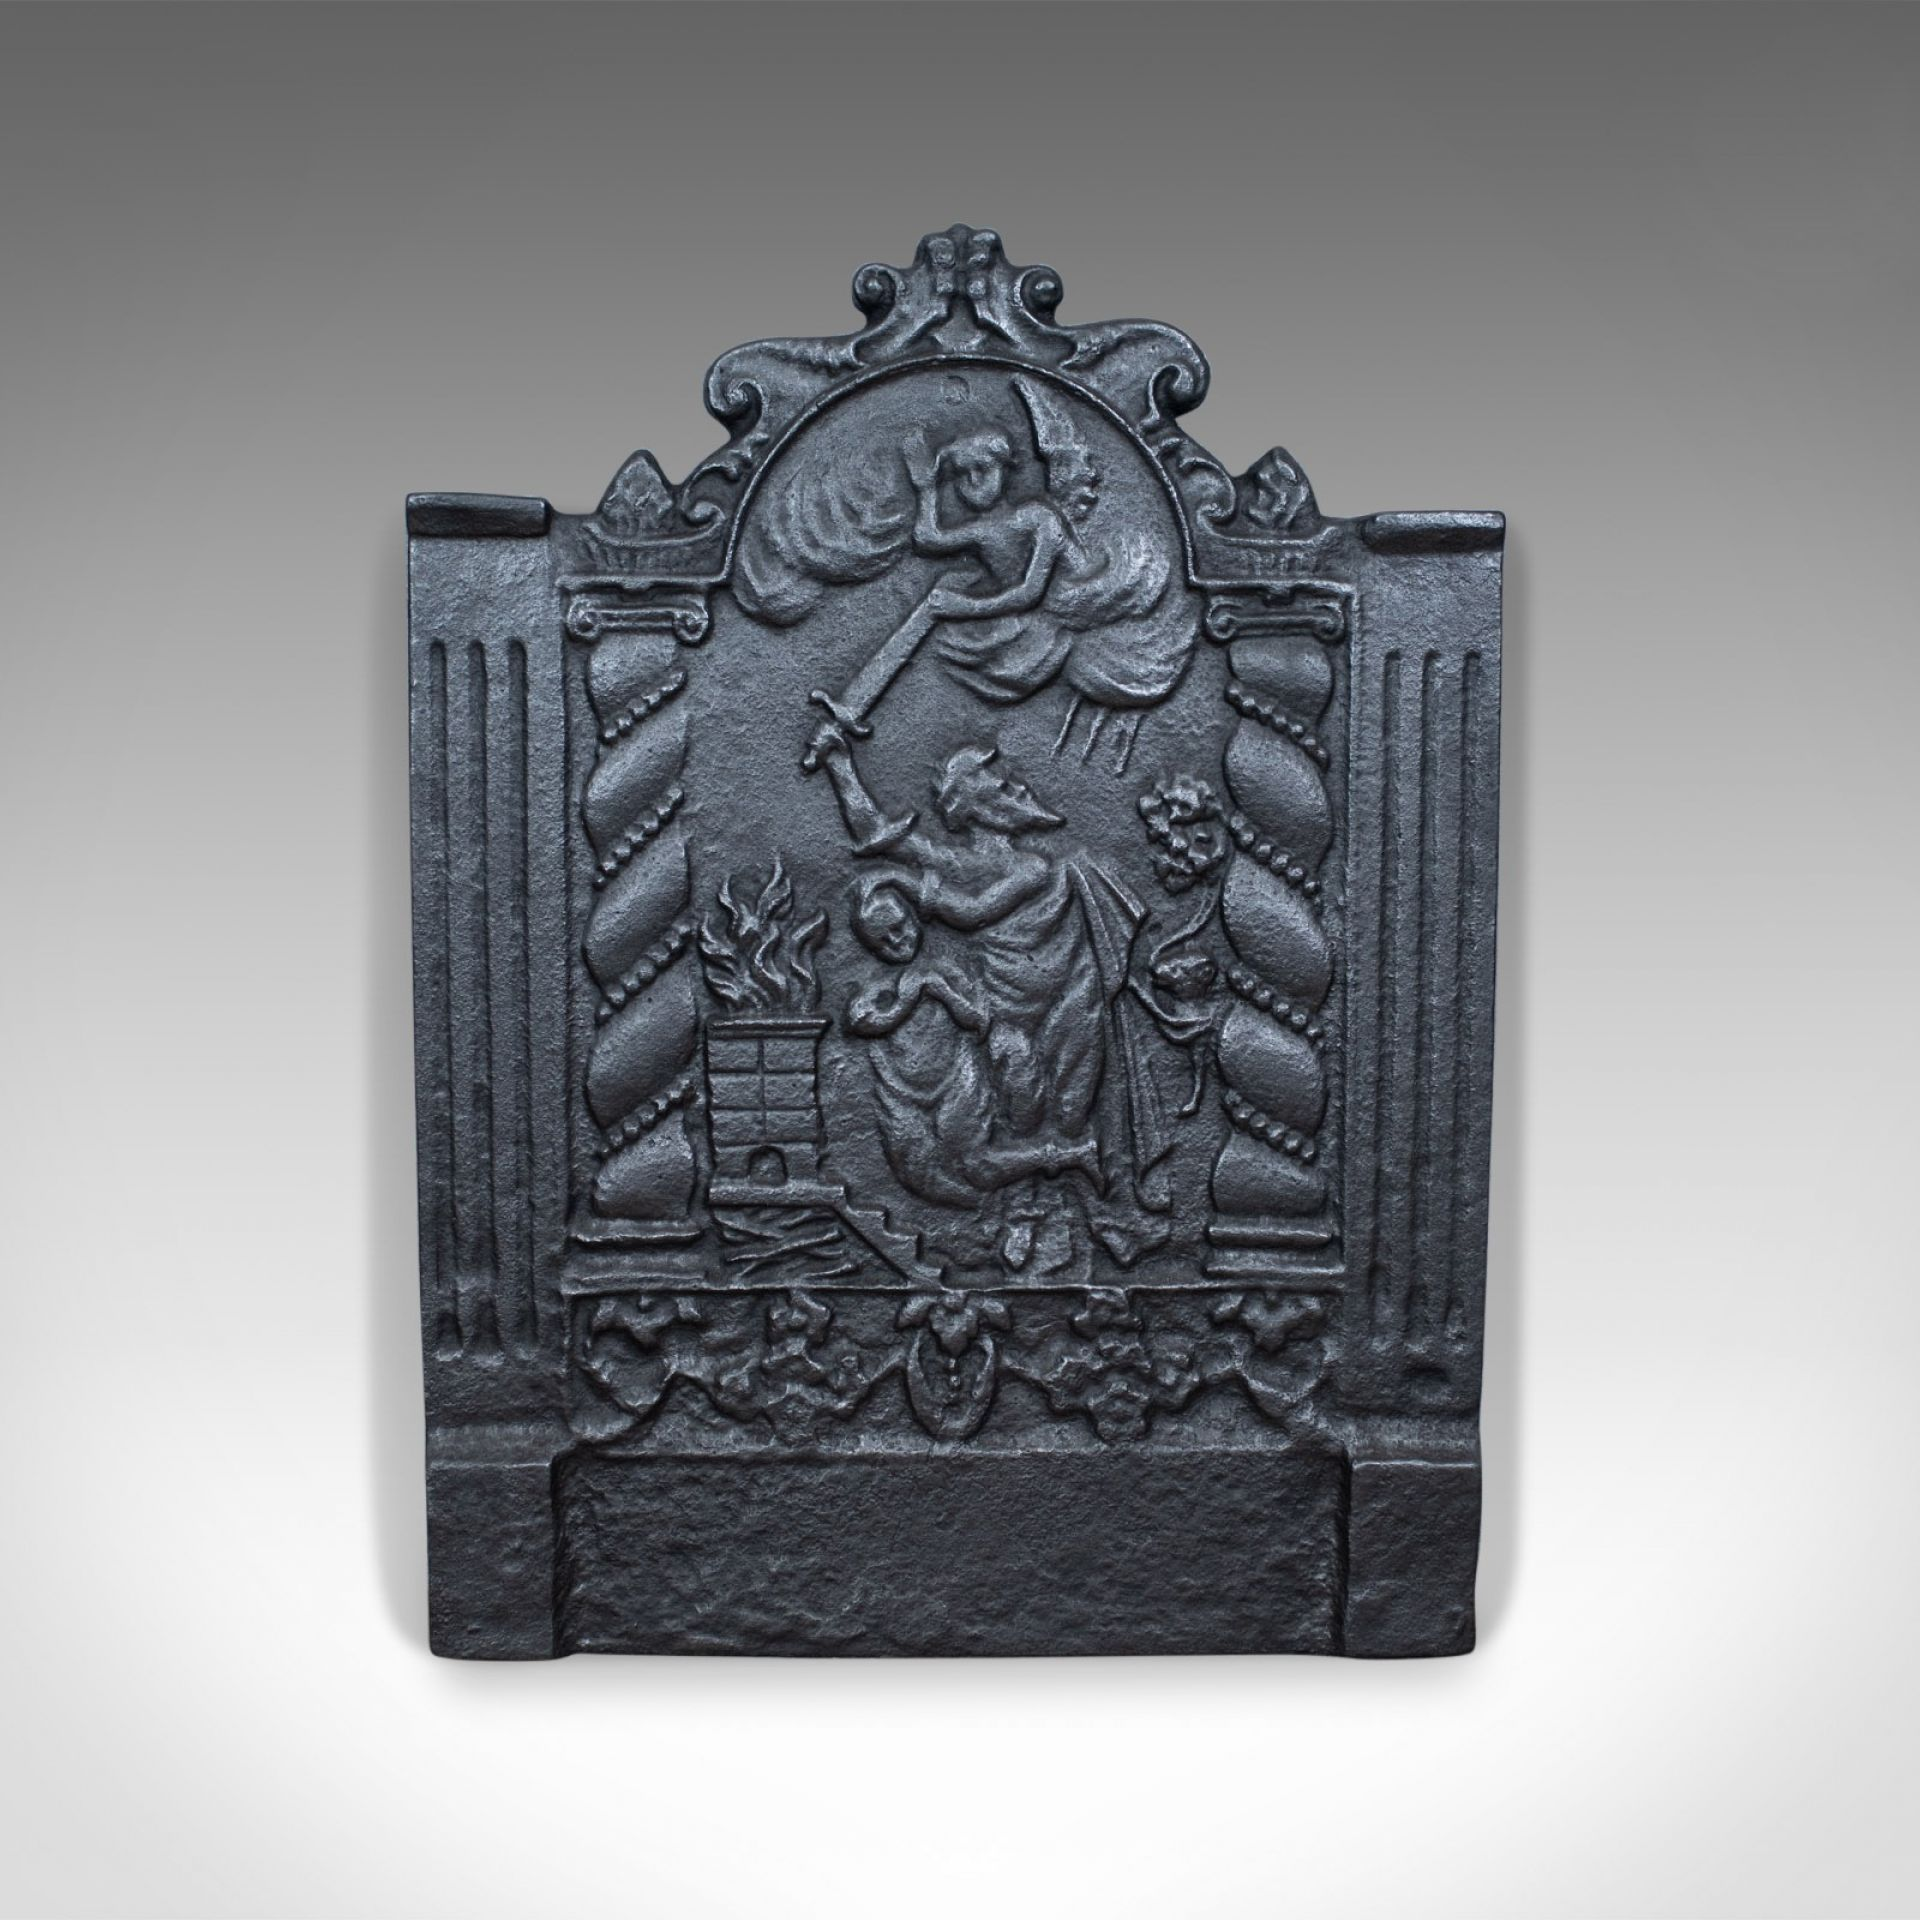 Cast Iron Fire Back, 17th Century Revival, Plate, Figures and Angel, Late C20th